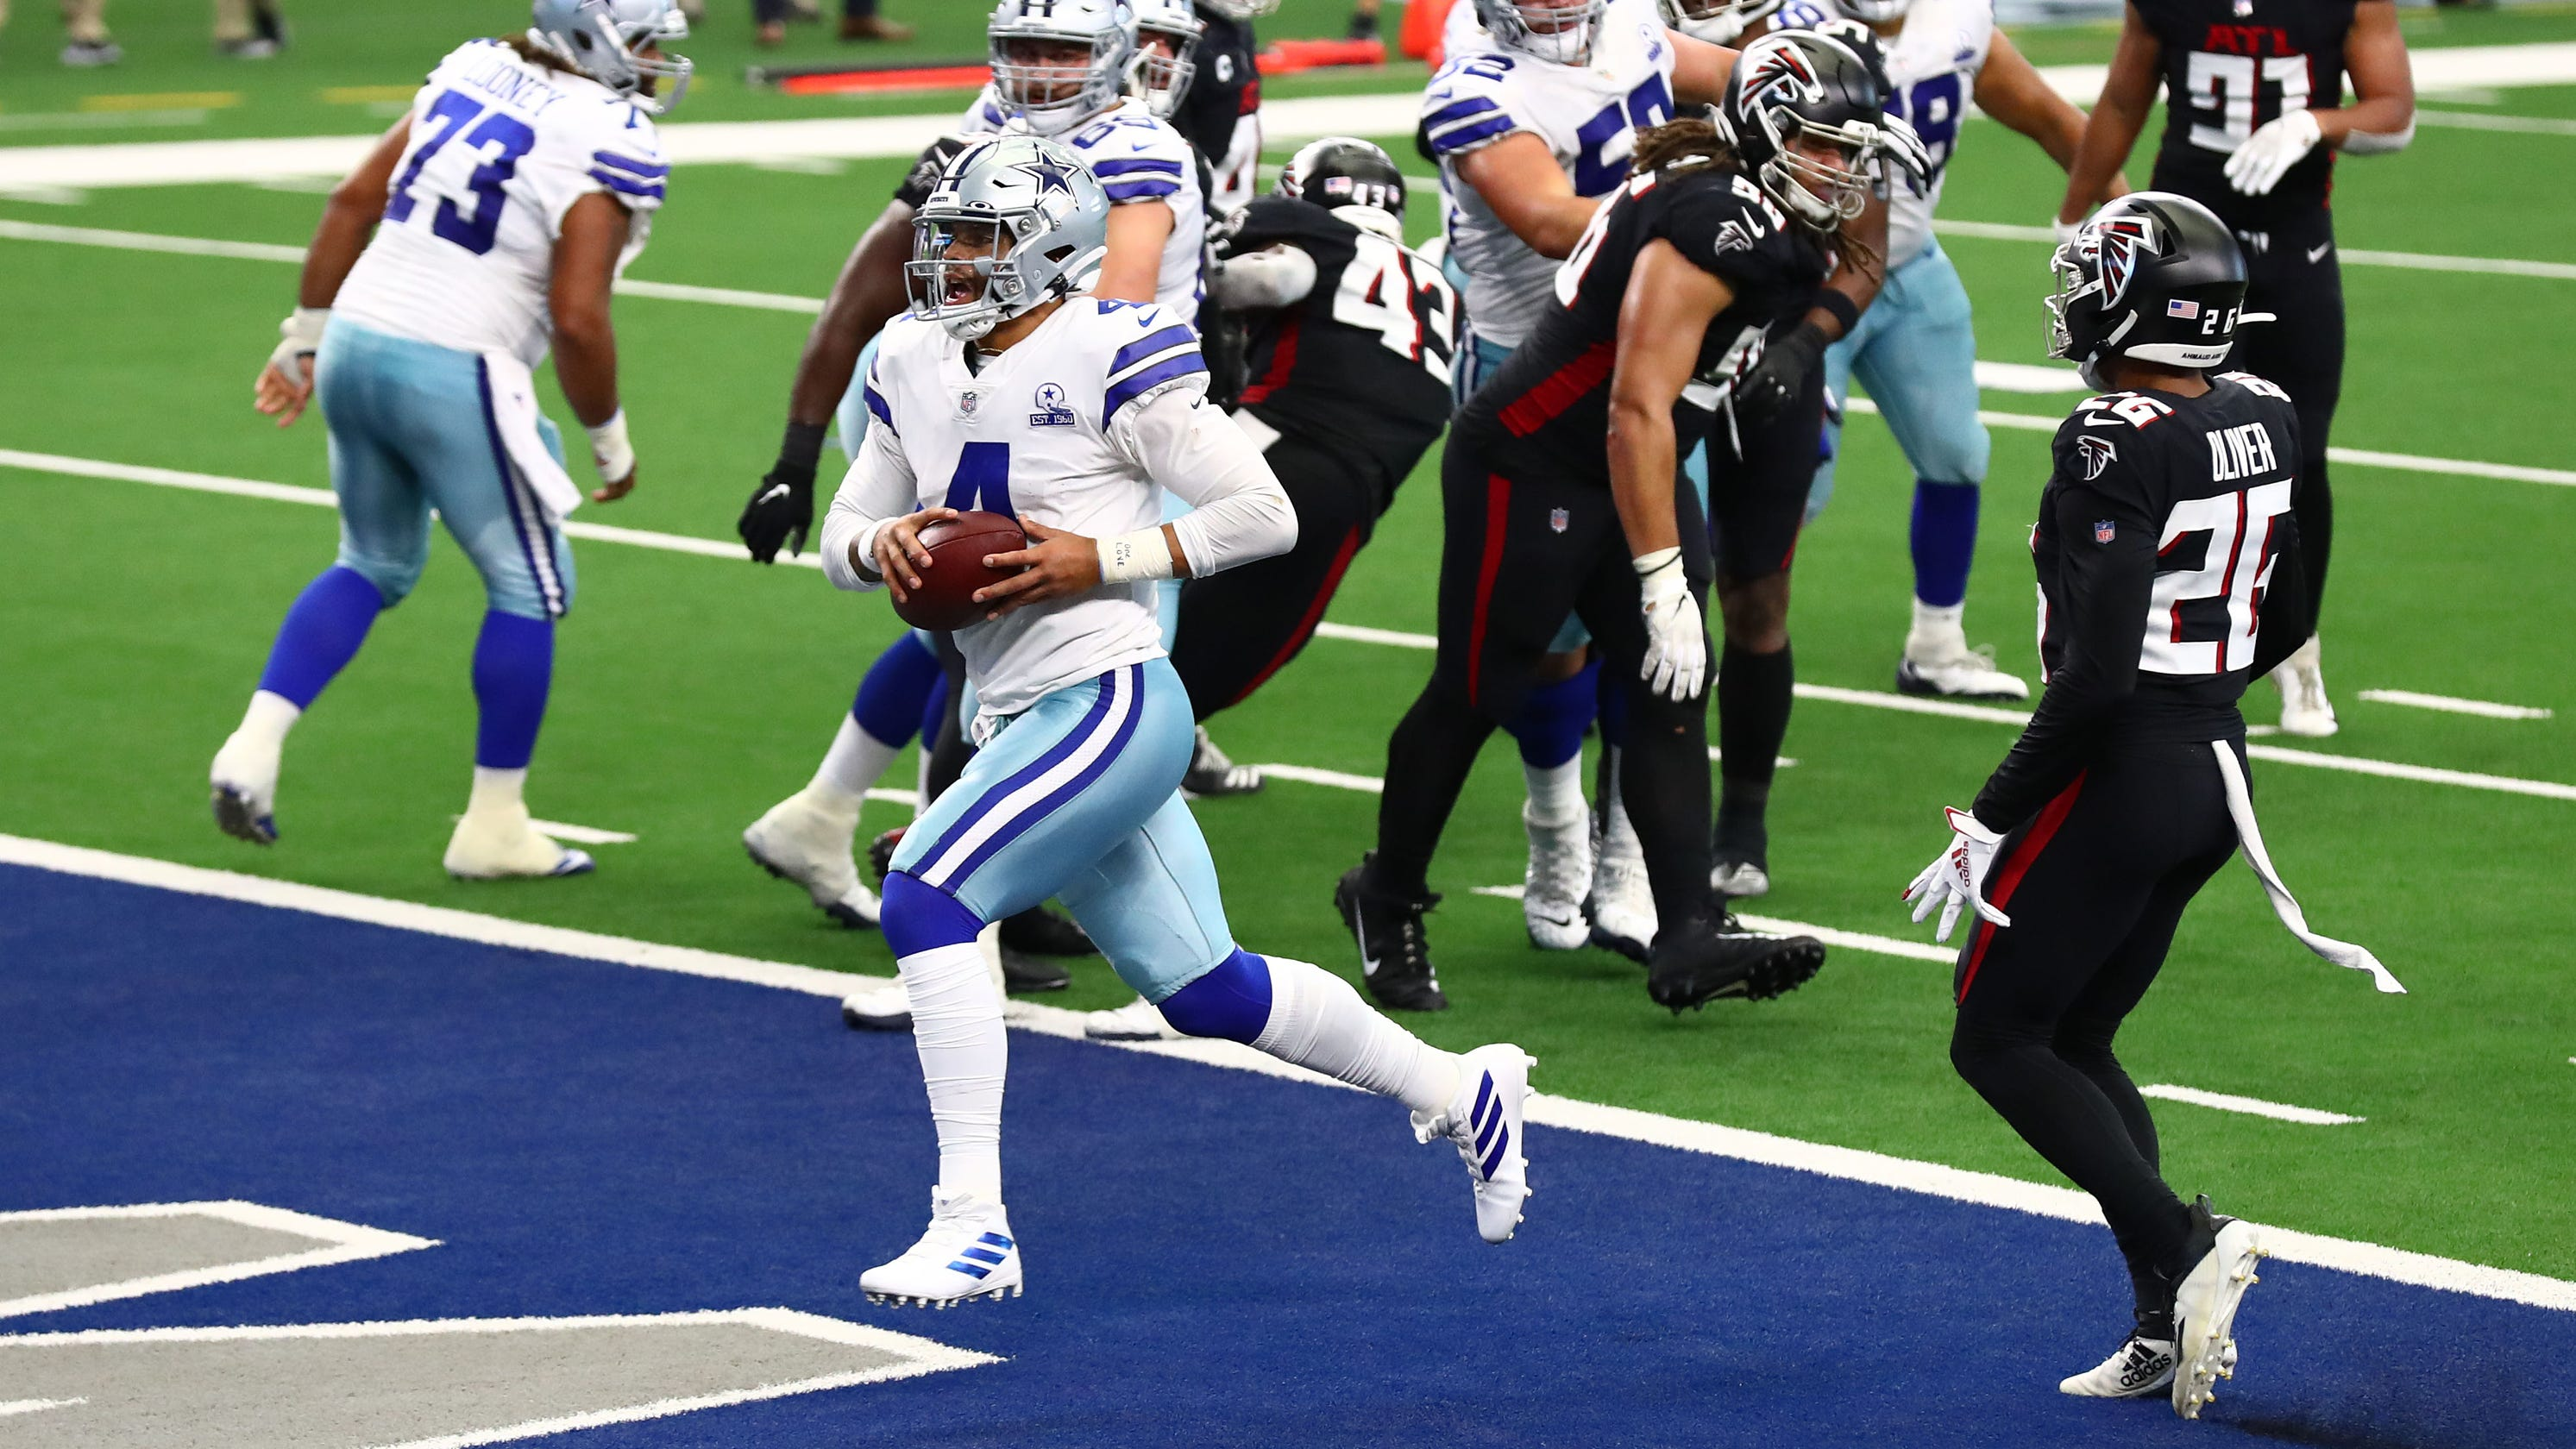 Cowboys stun Falcons by completing last-minute comeback, erasing 20-point deficit